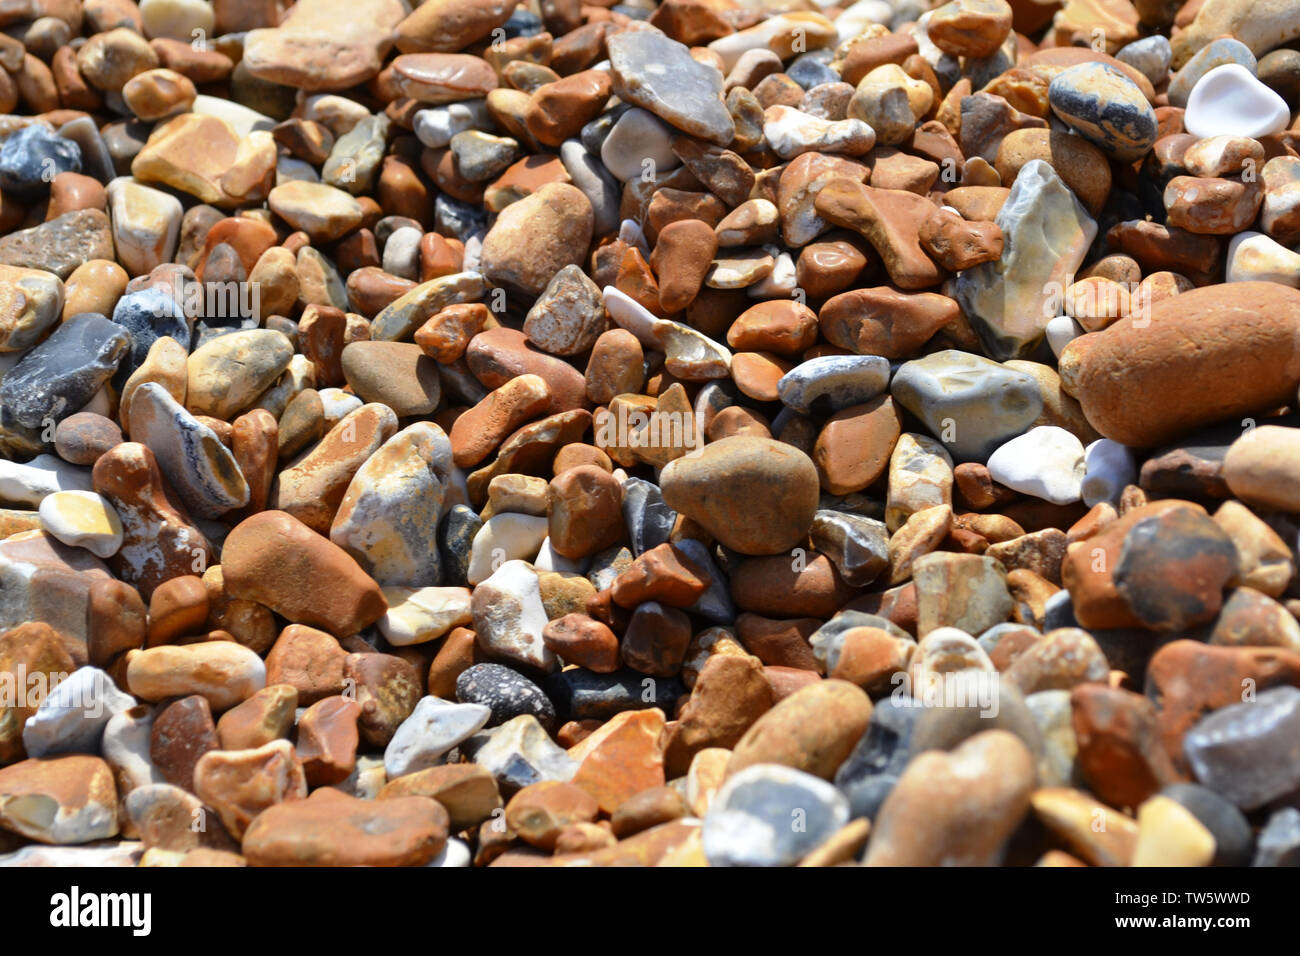 Pebble beach of big oval colorful stones brightly illuminated. Stock Photo